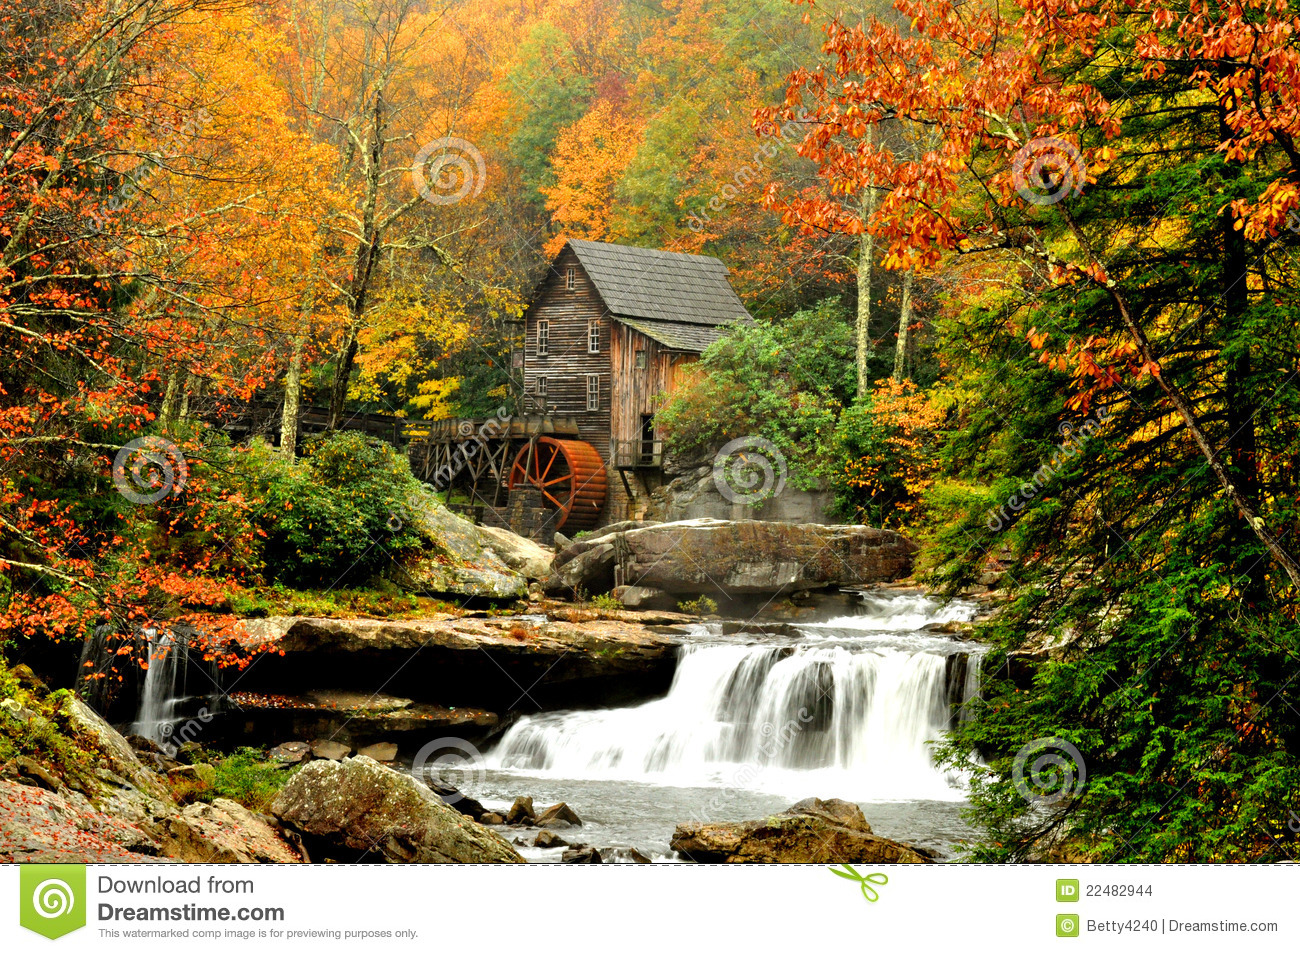 Fall Wallpaper With Deer Grist Mill Surrounded By Fall Leaves Stock Photo Image